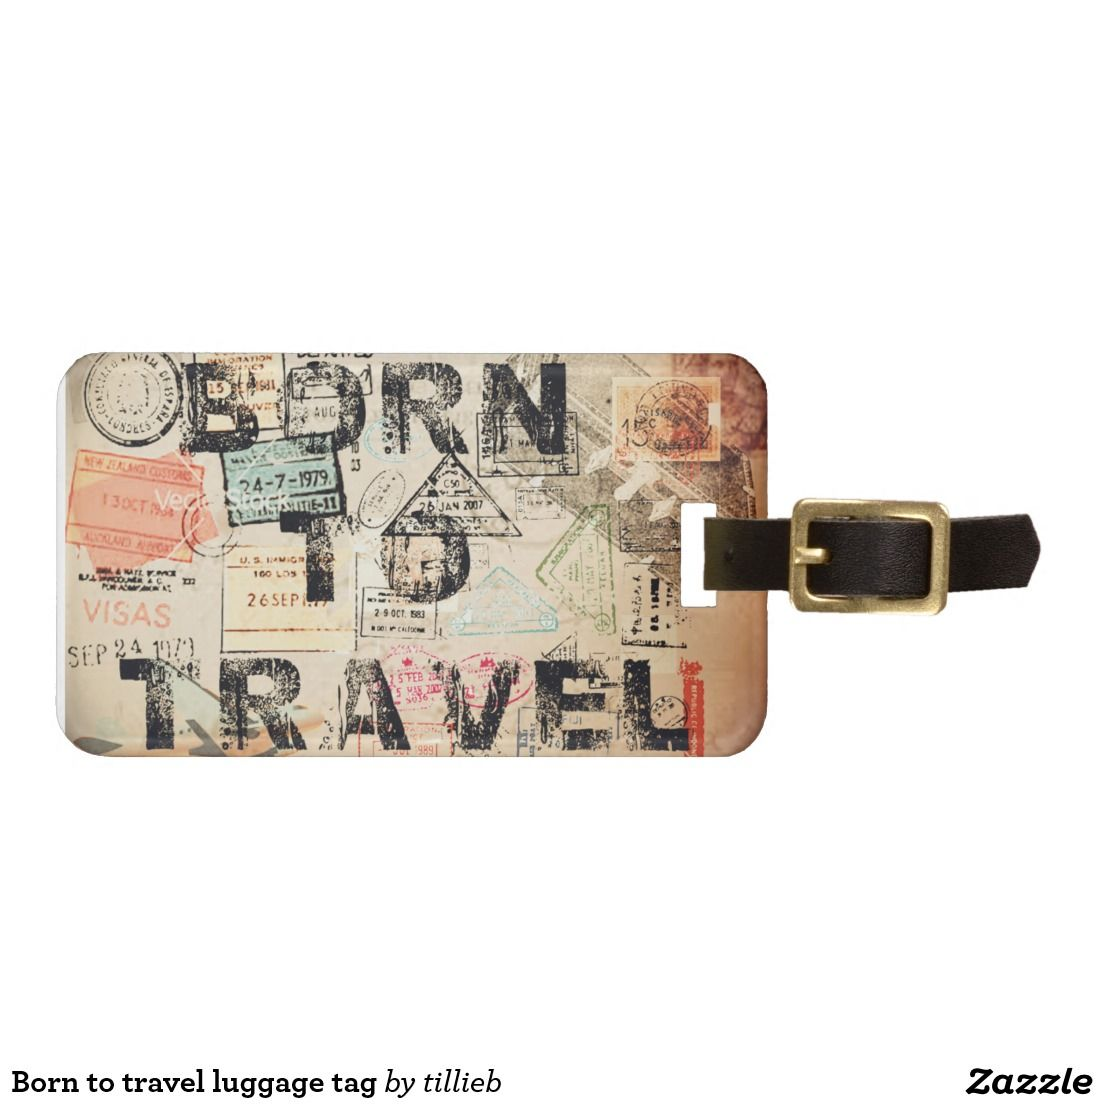 876bfe4a7765 Born to travel luggage tag | Travel | Travel luggage, Luggage ...